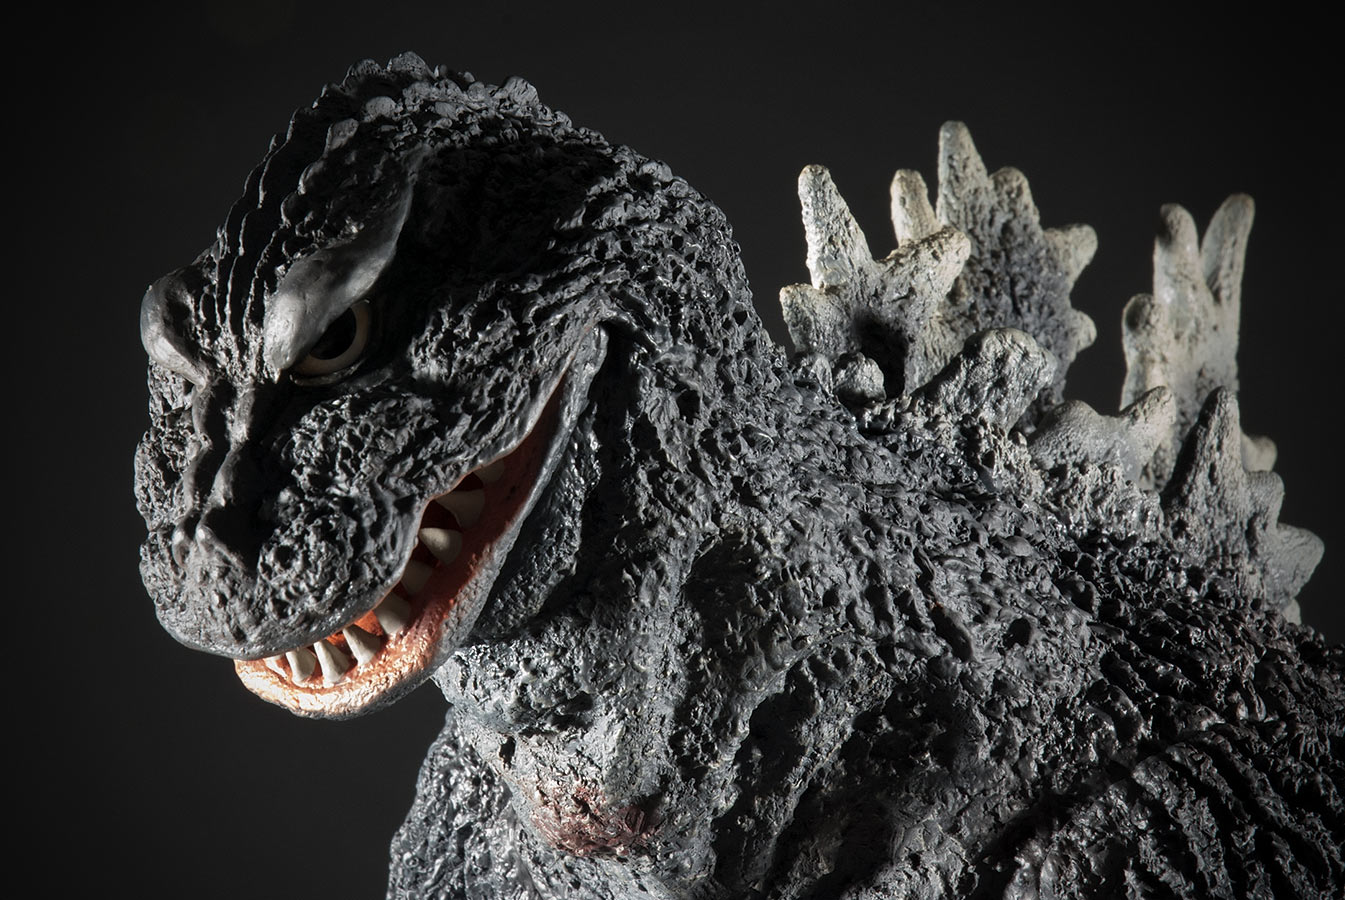 A close-up of the Gigantic Series Godzilla 1962.